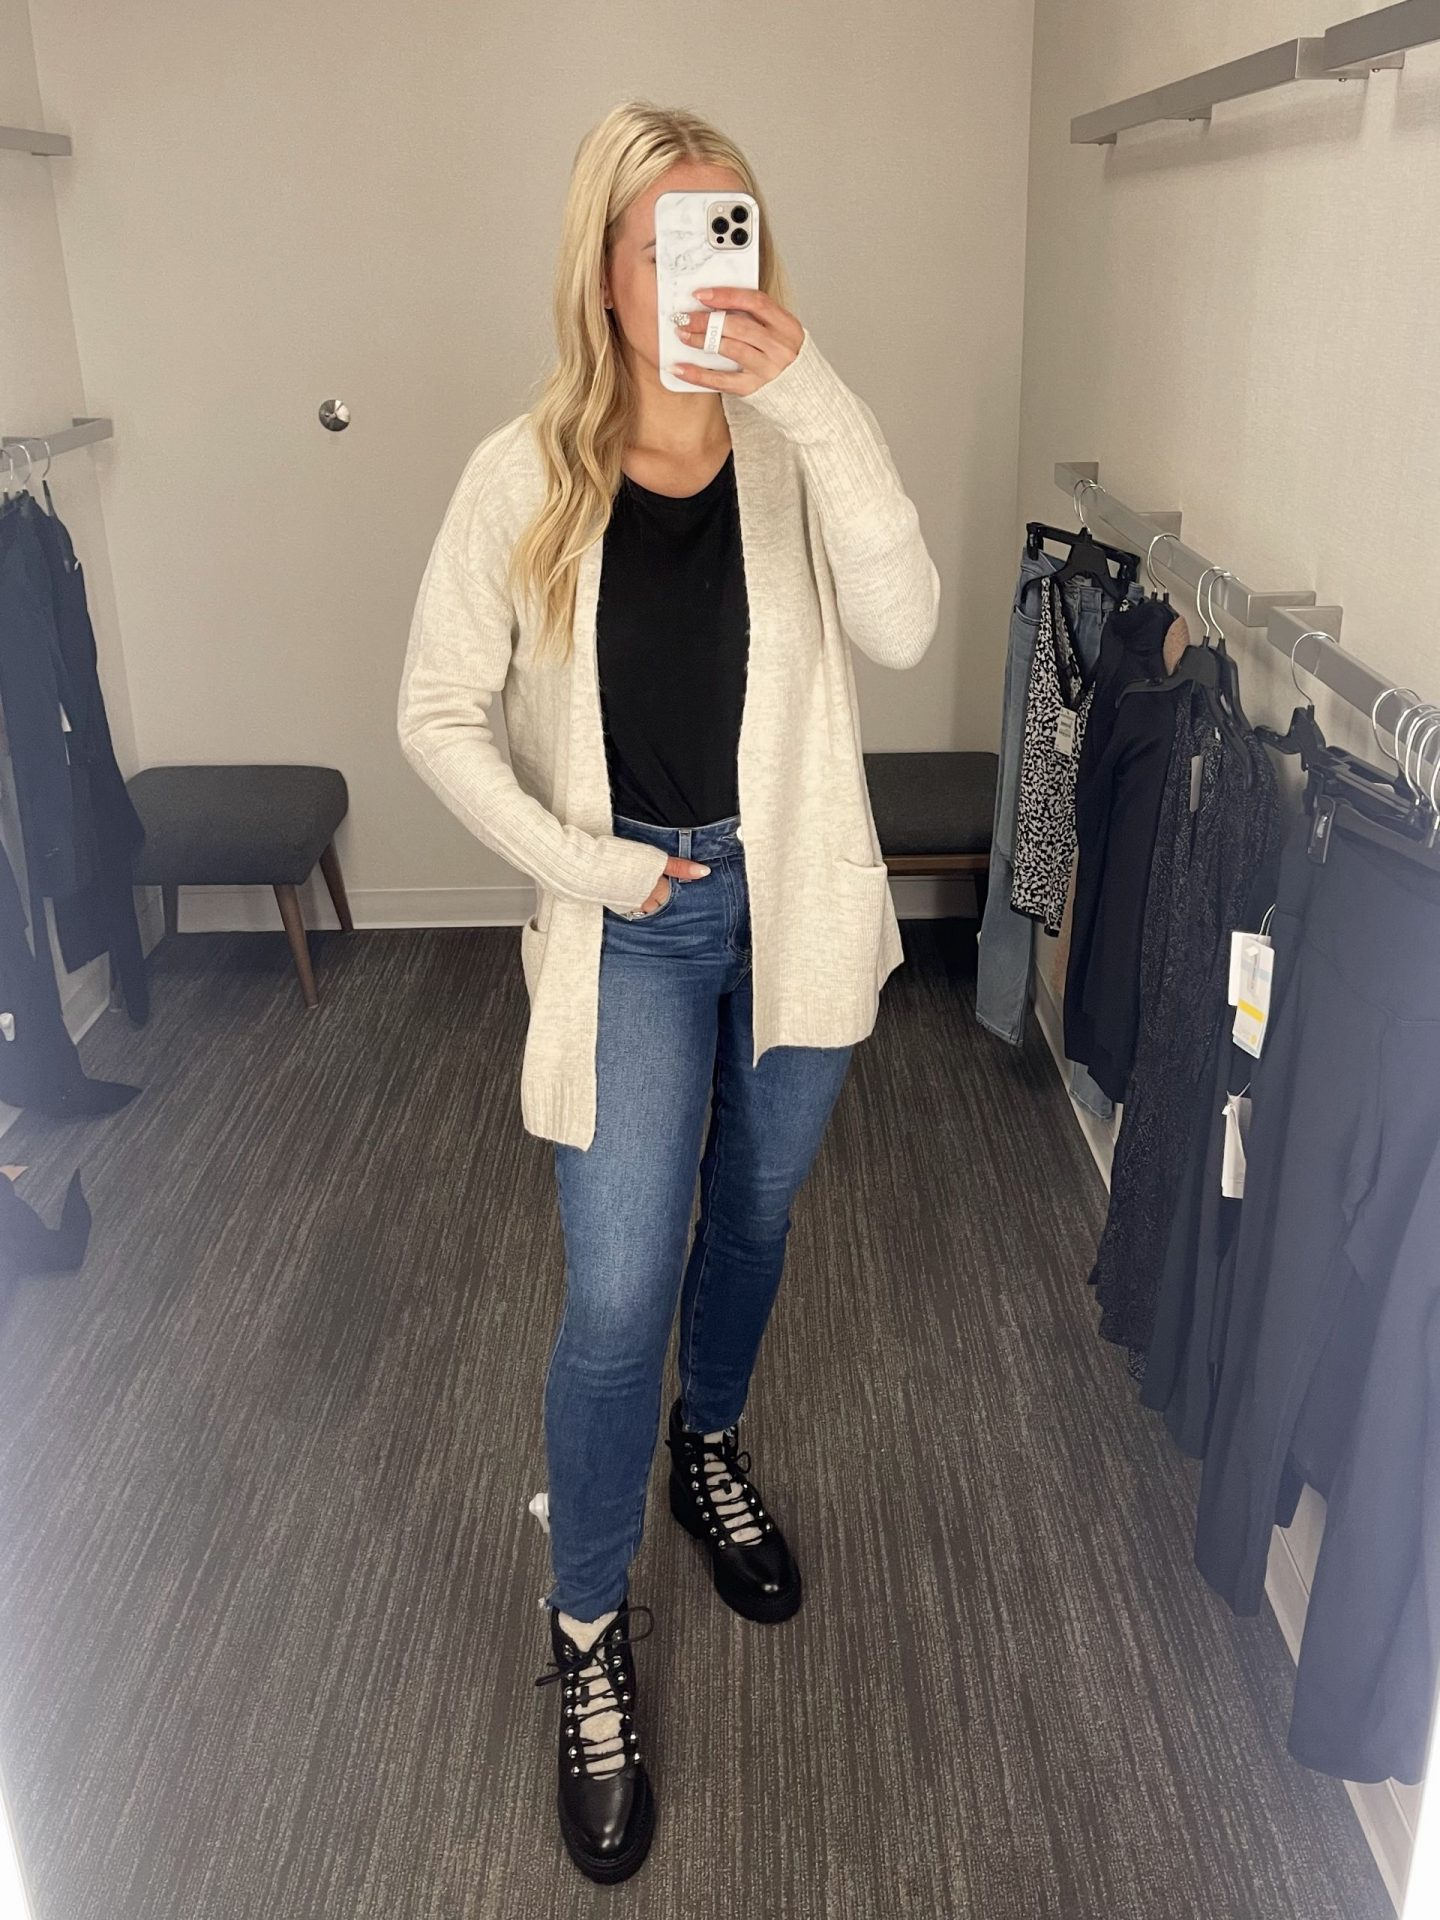 legallee blonde wearing Nordstrom jeans and cardigan fitting room review - nordstrom anniversary sale